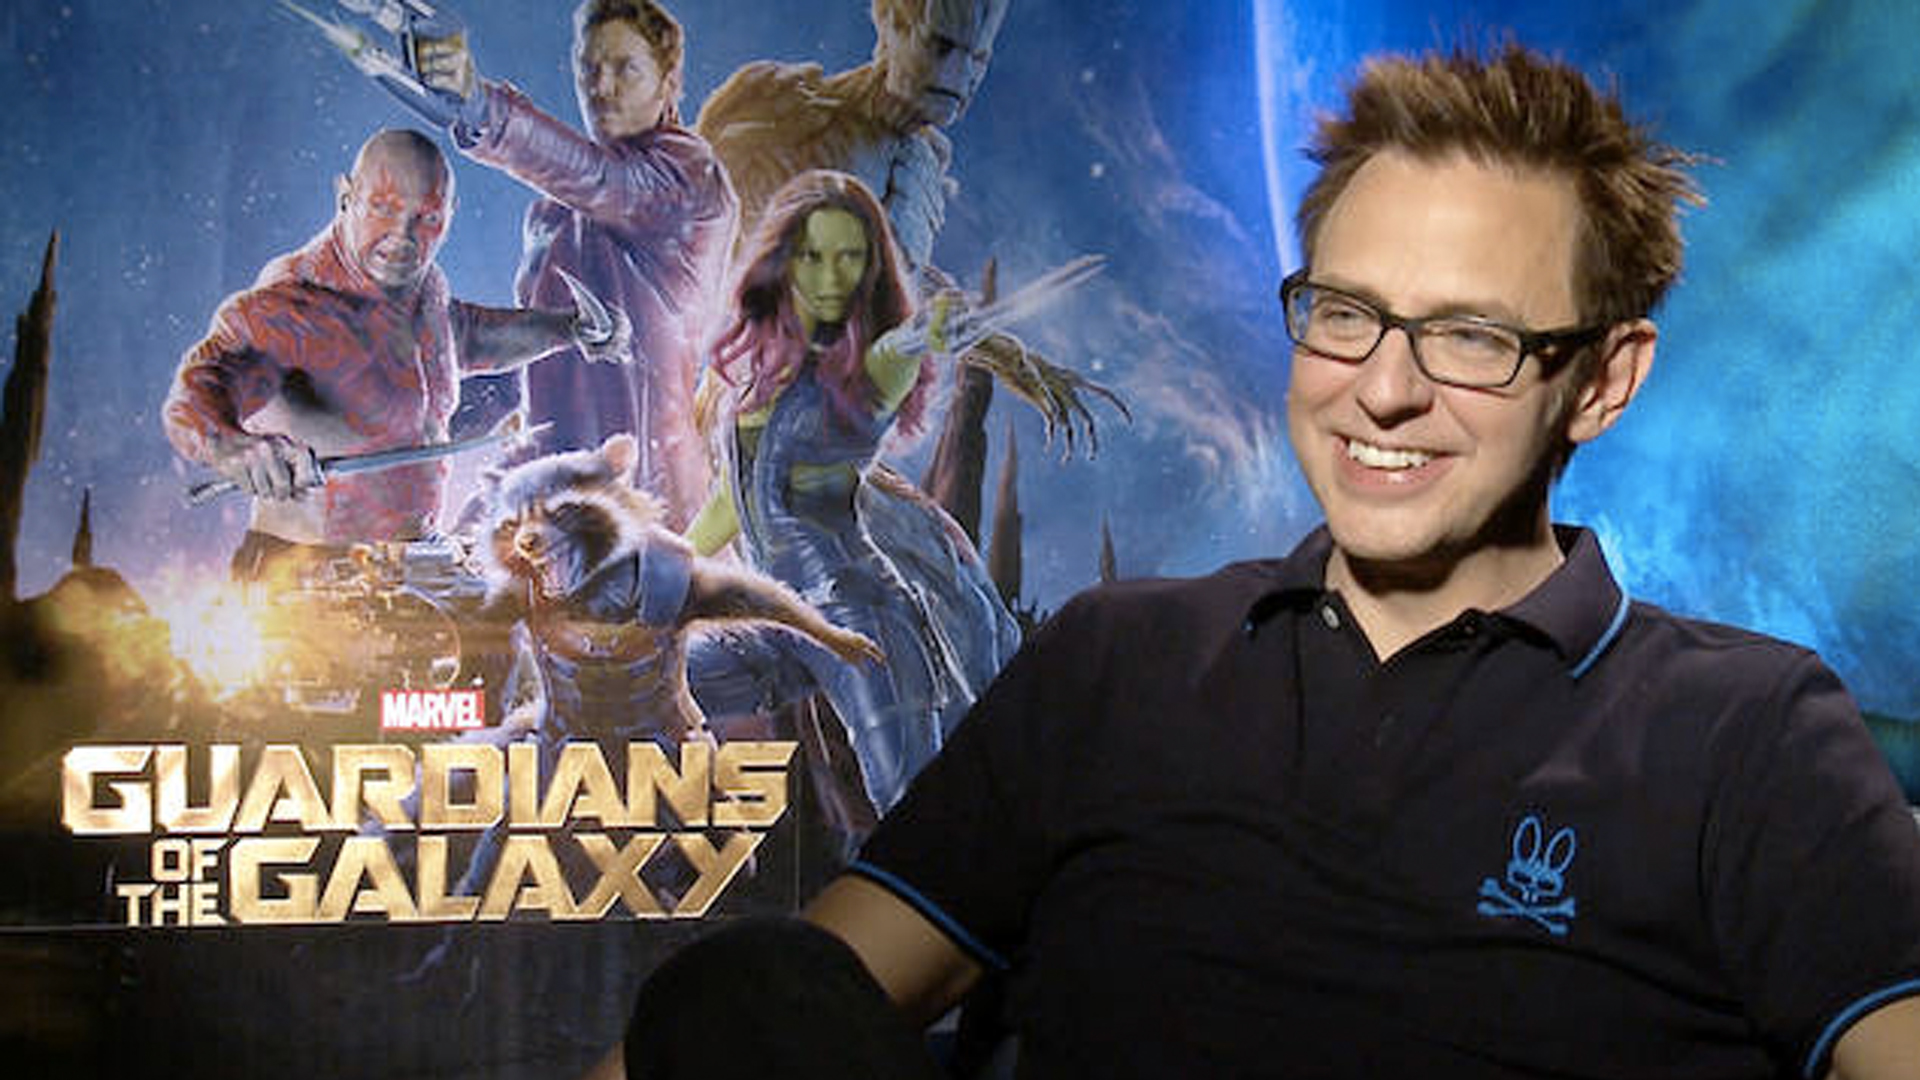 El comunicado de James Gunn tras ser despedido de 'Guardianes 3'